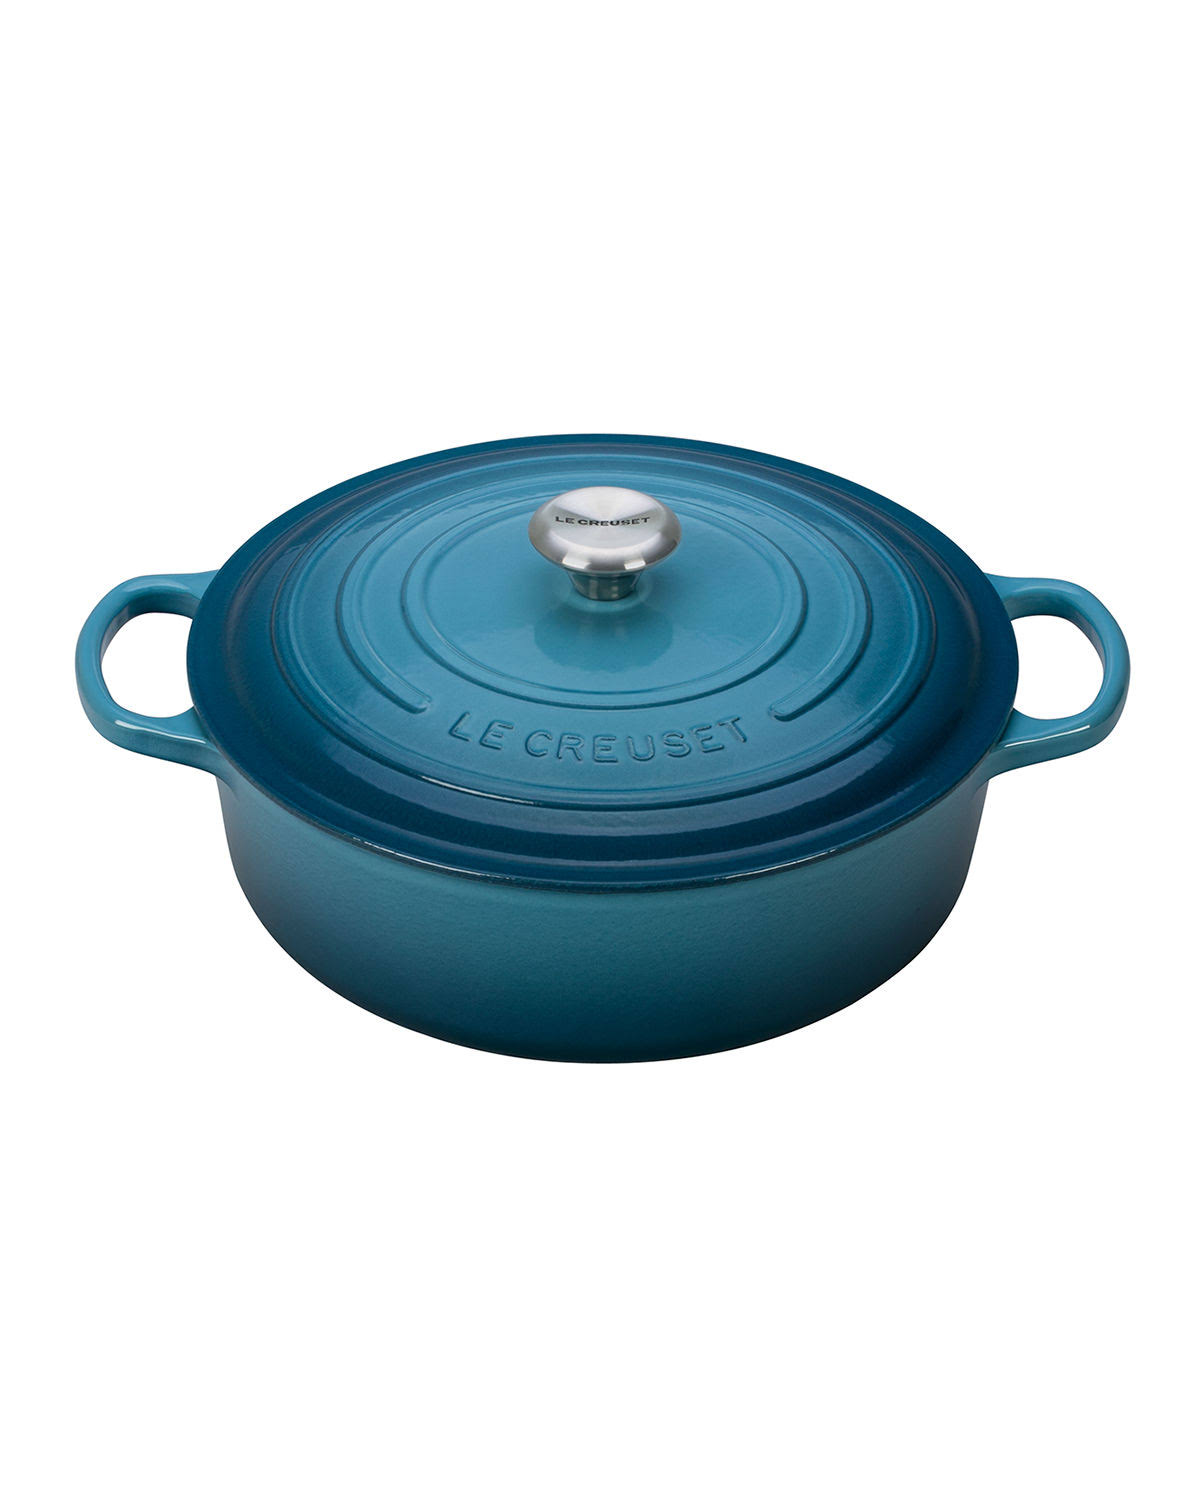 Le Creuset Enameled Signature Round Wide Cast Iron Dutch Oven Cookware - Marine, 6.75 Quarts